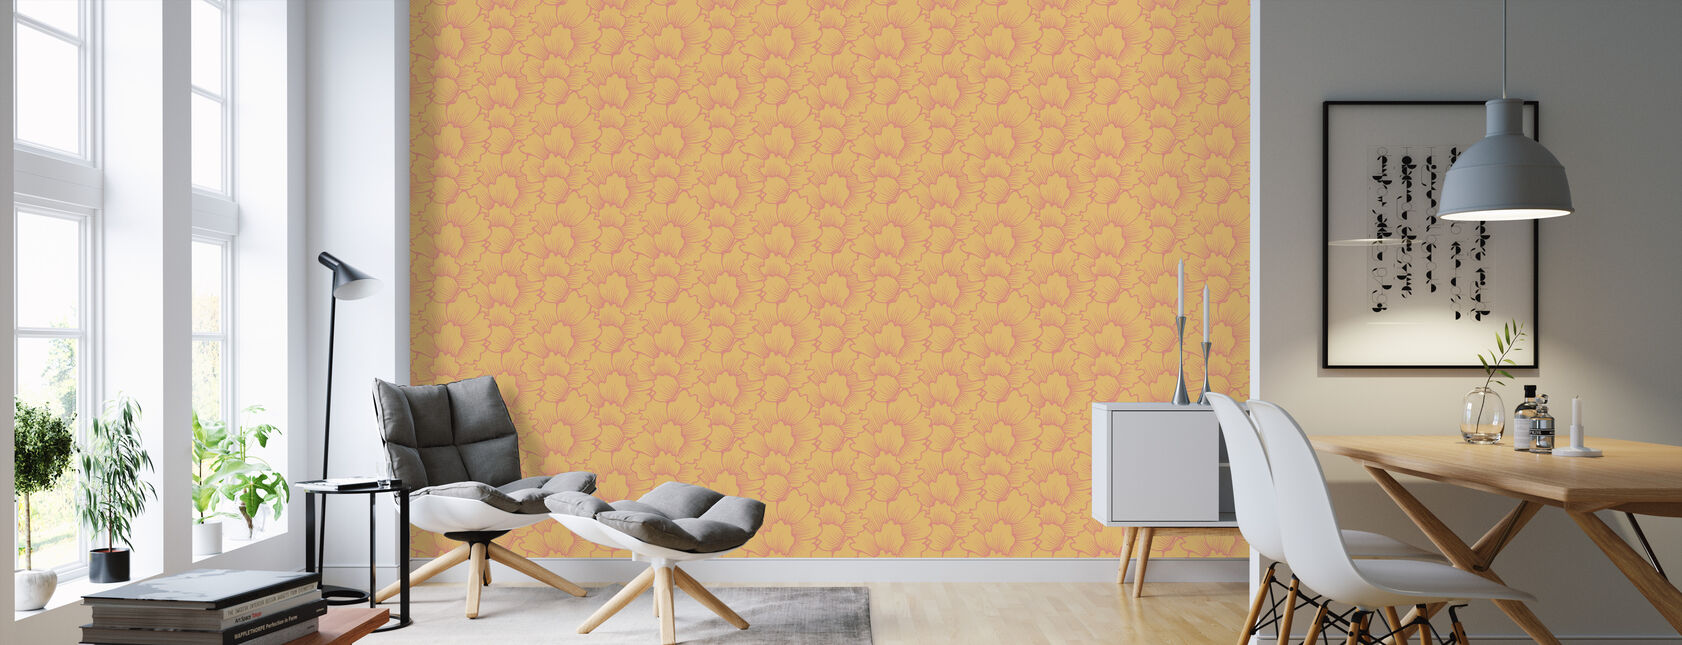 Mostly Coral Pink on Yellow - Wallpaper - Living Room